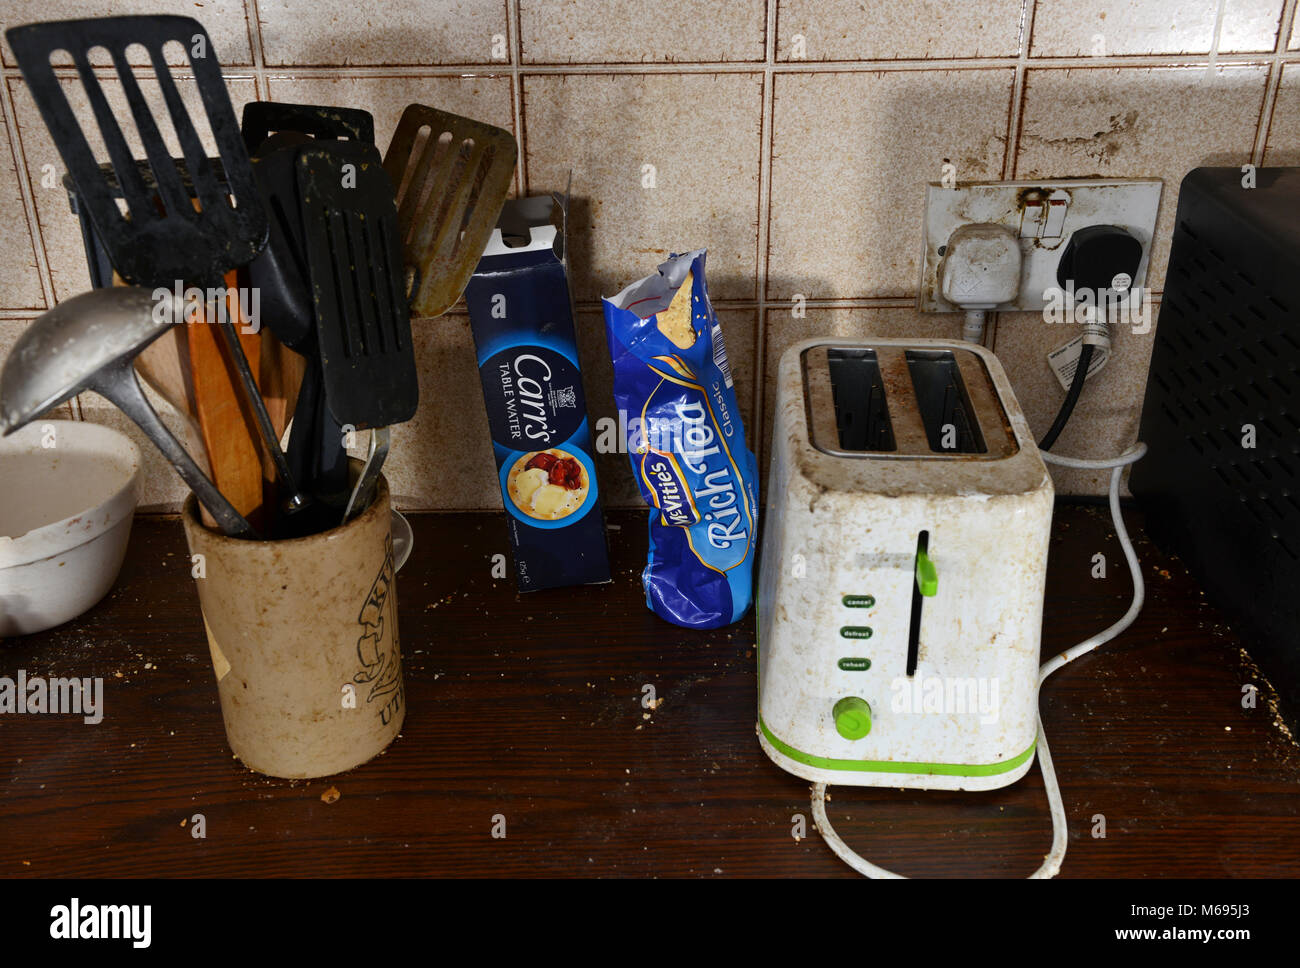 Dirty Kitchen Stockfotos & Dirty Kitchen Bilder - Alamy